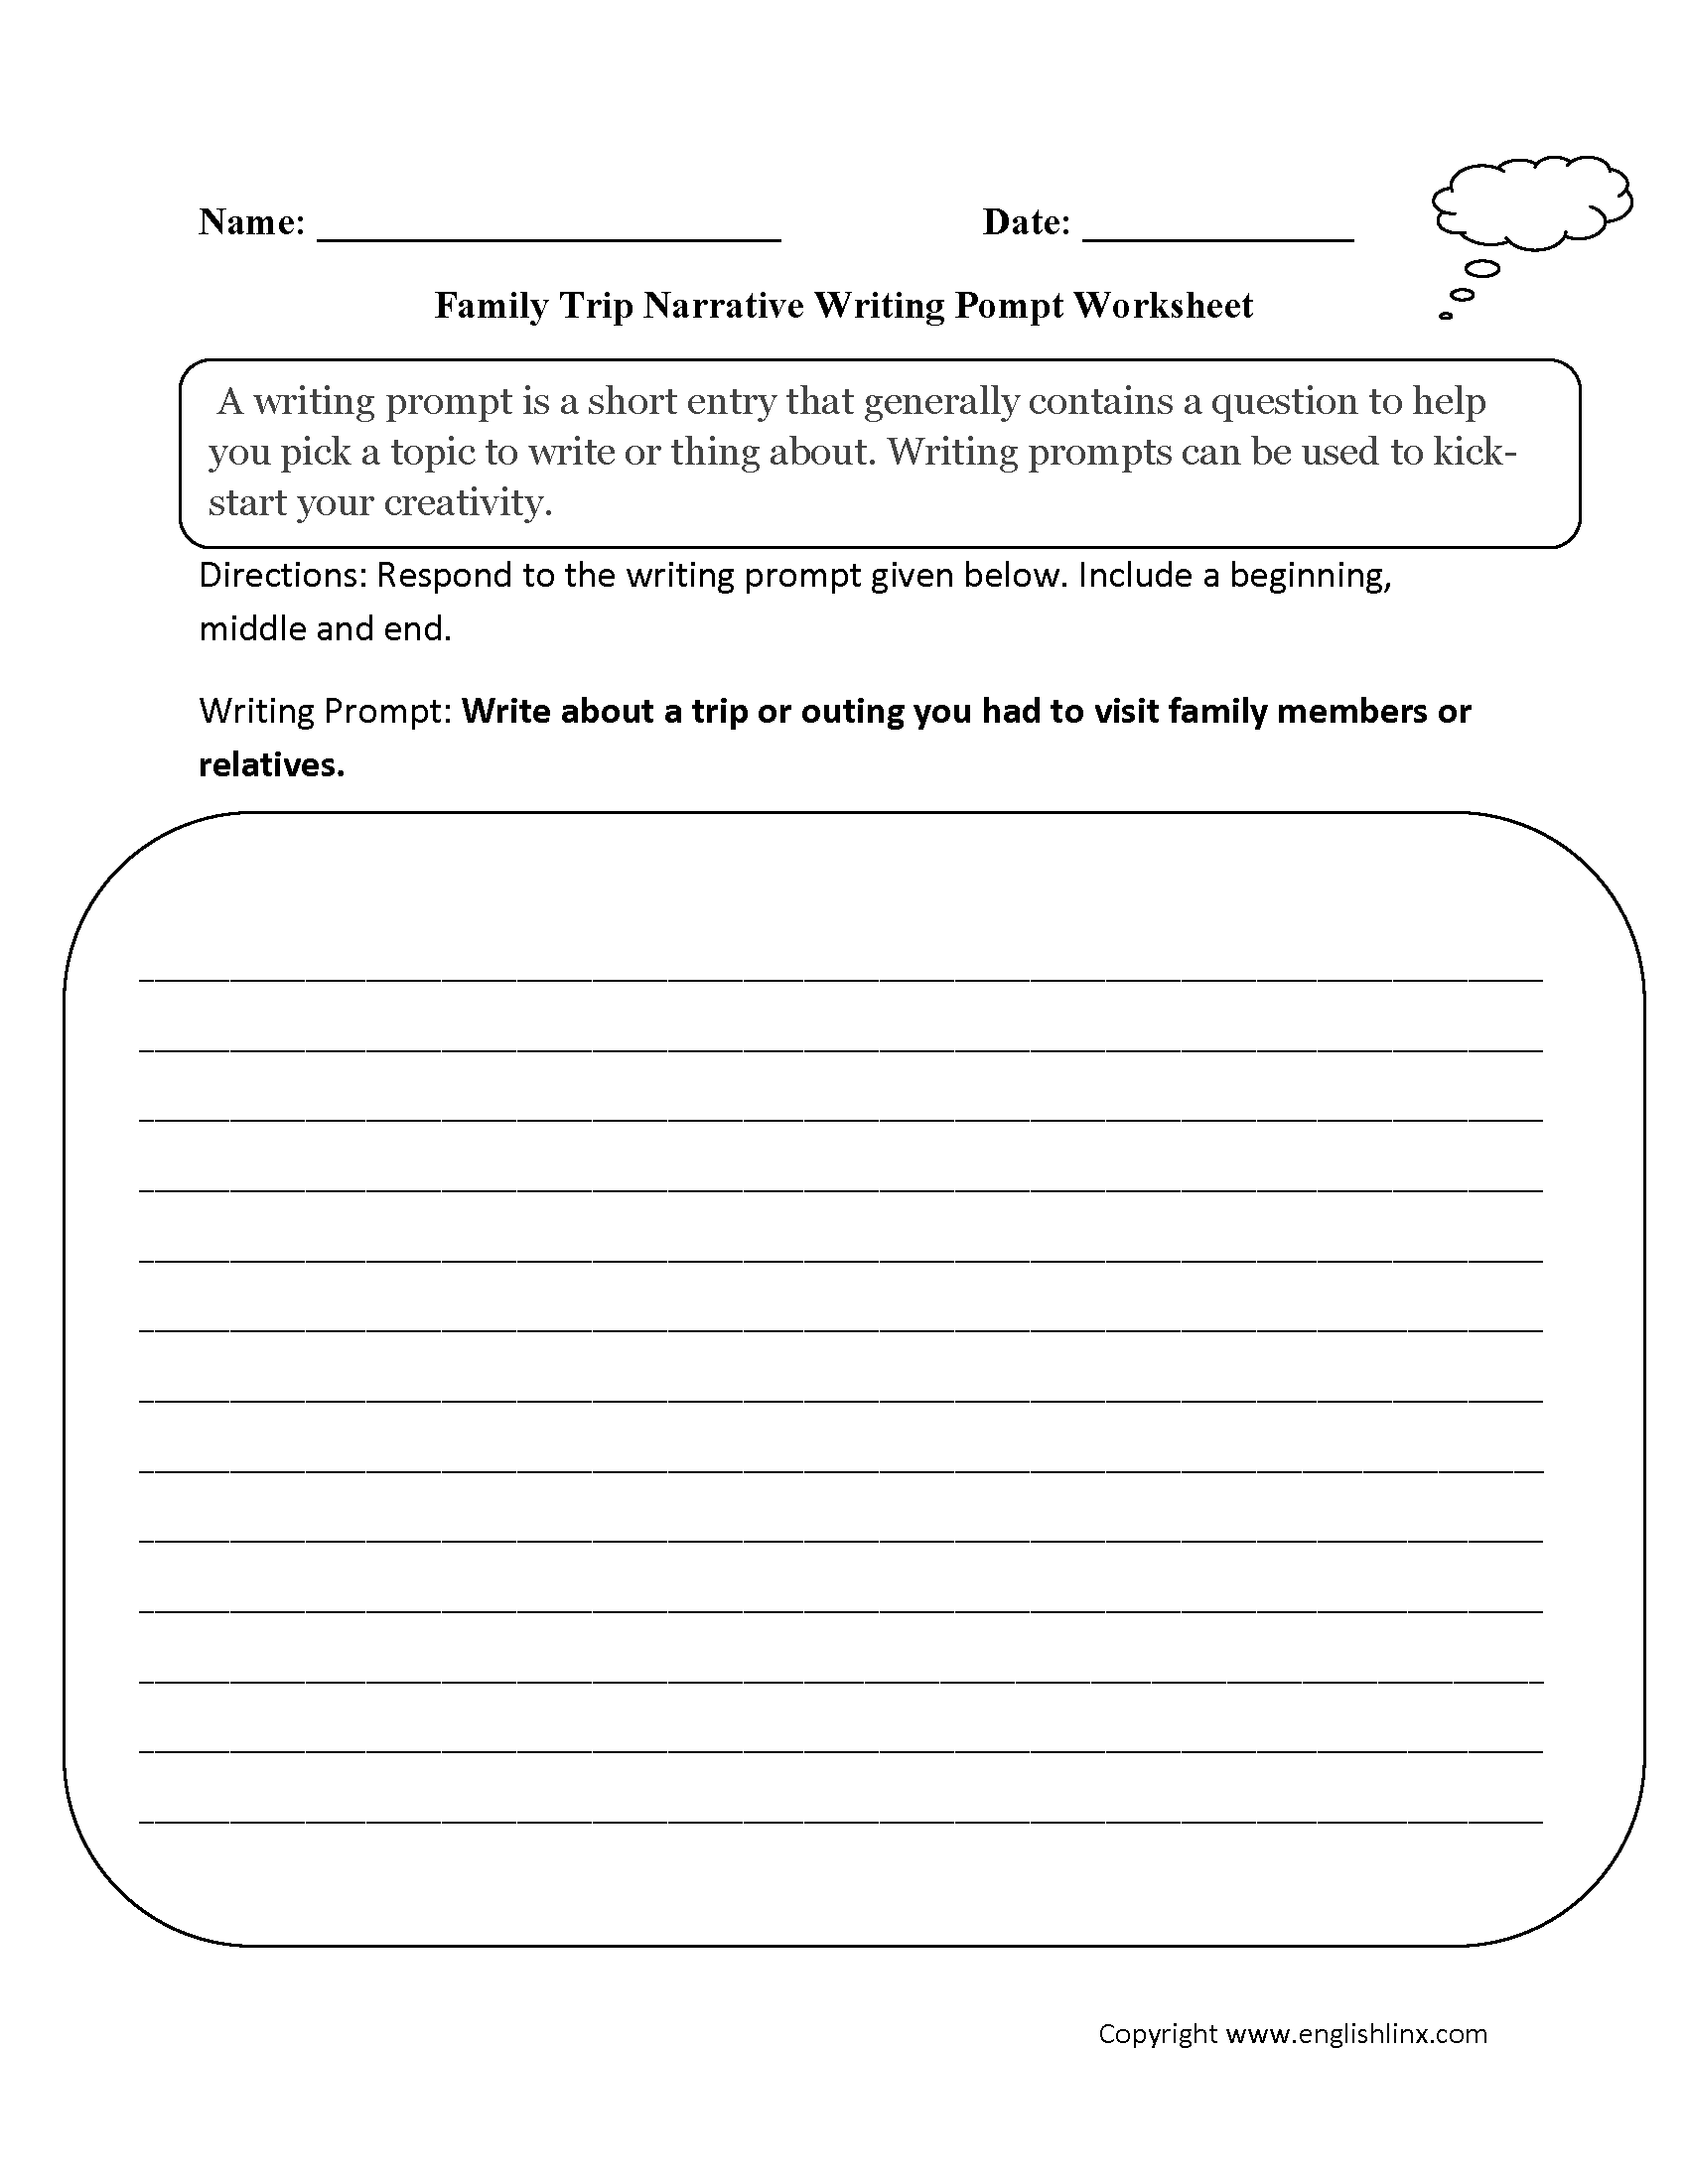 writing prompts worksheets narrative writing prompts worksheets family narrative writing prompt worksheet